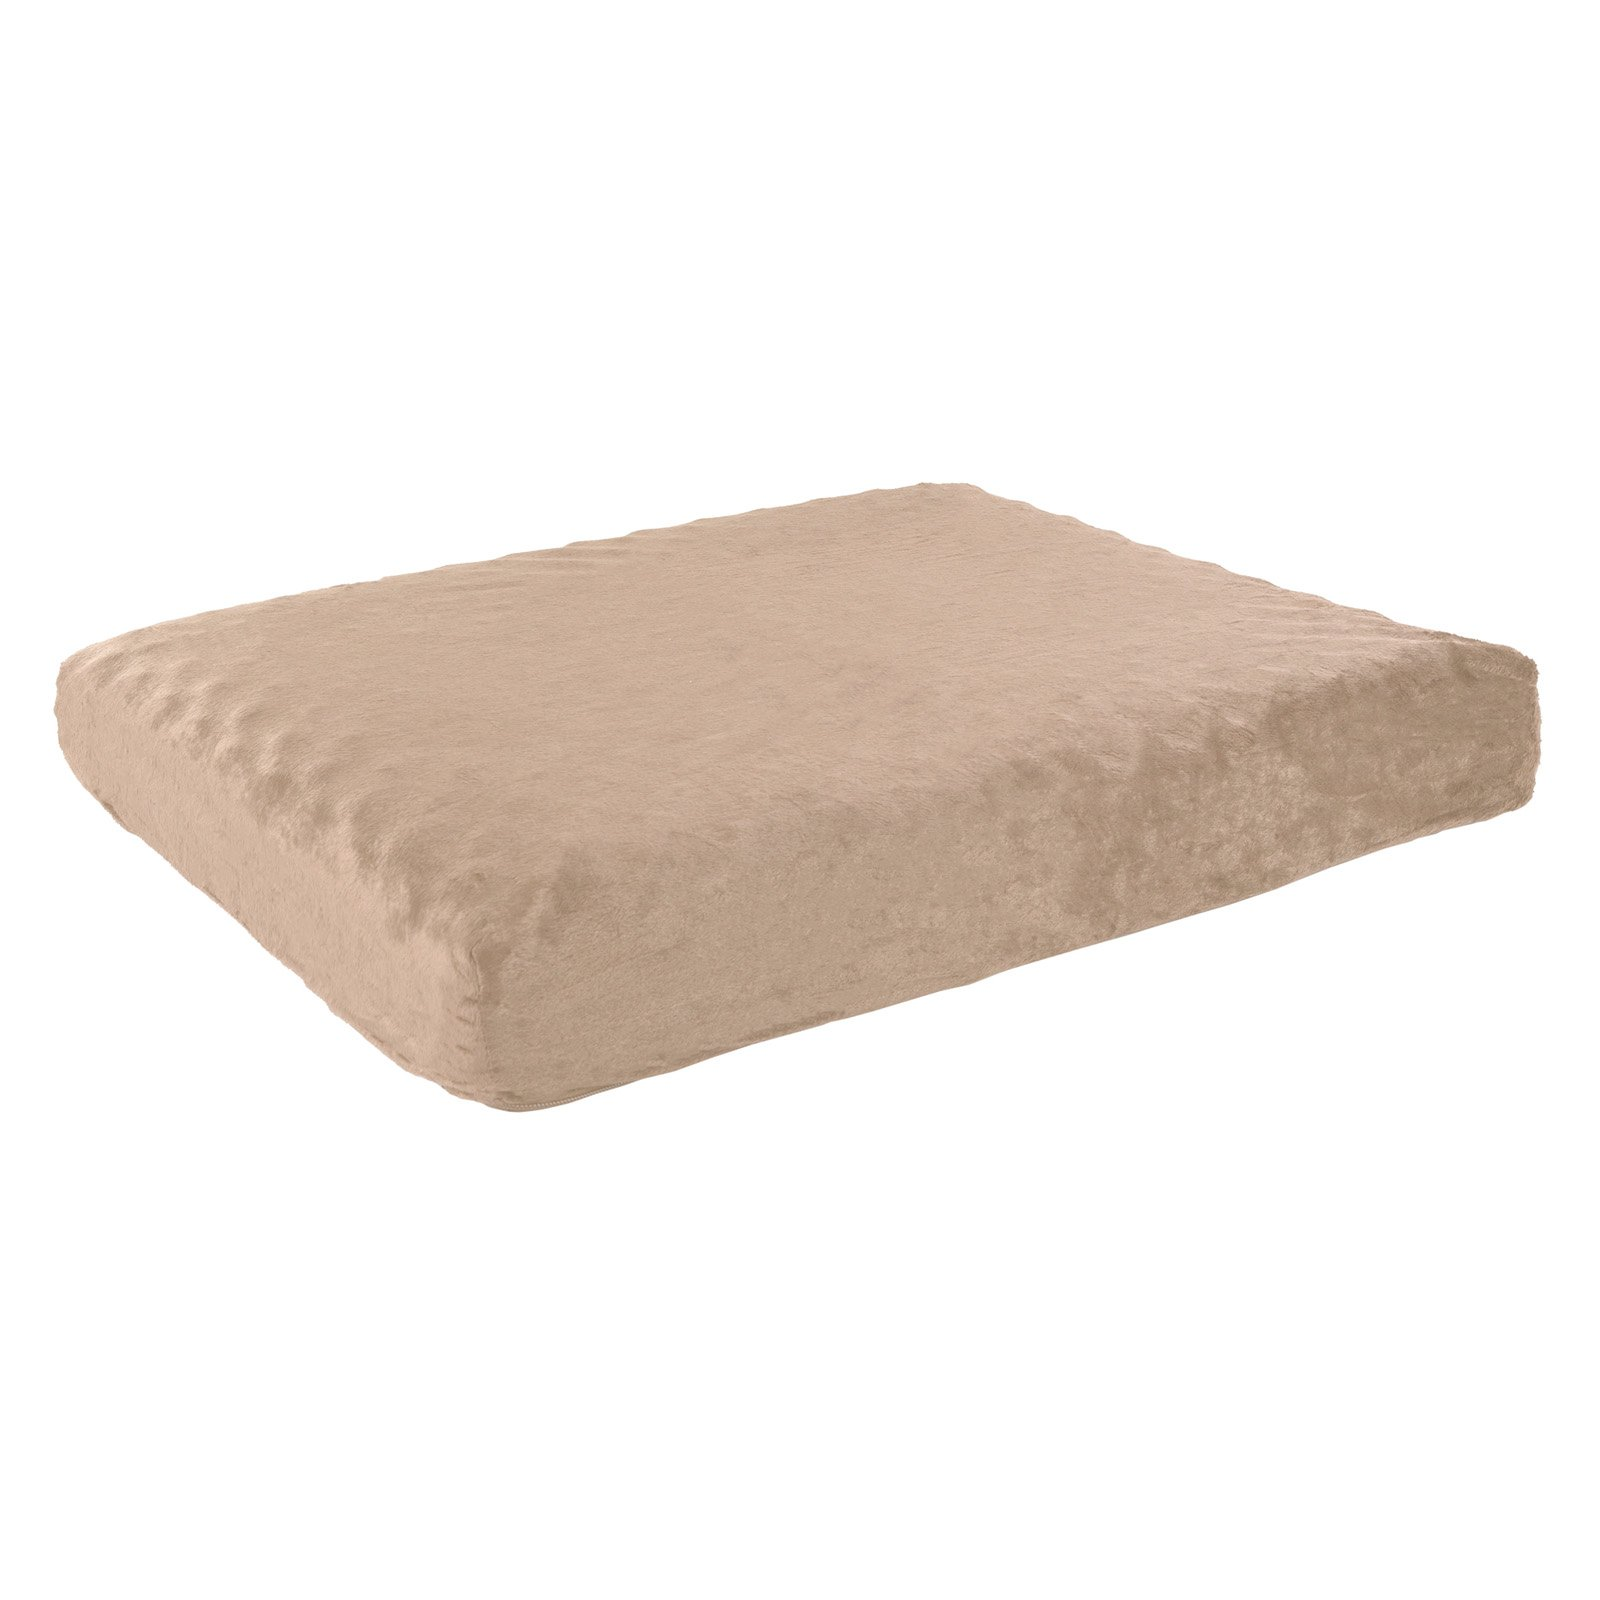 Petmaker Orthopedic Memory Foam Dog Bed with Removable Cover - Large